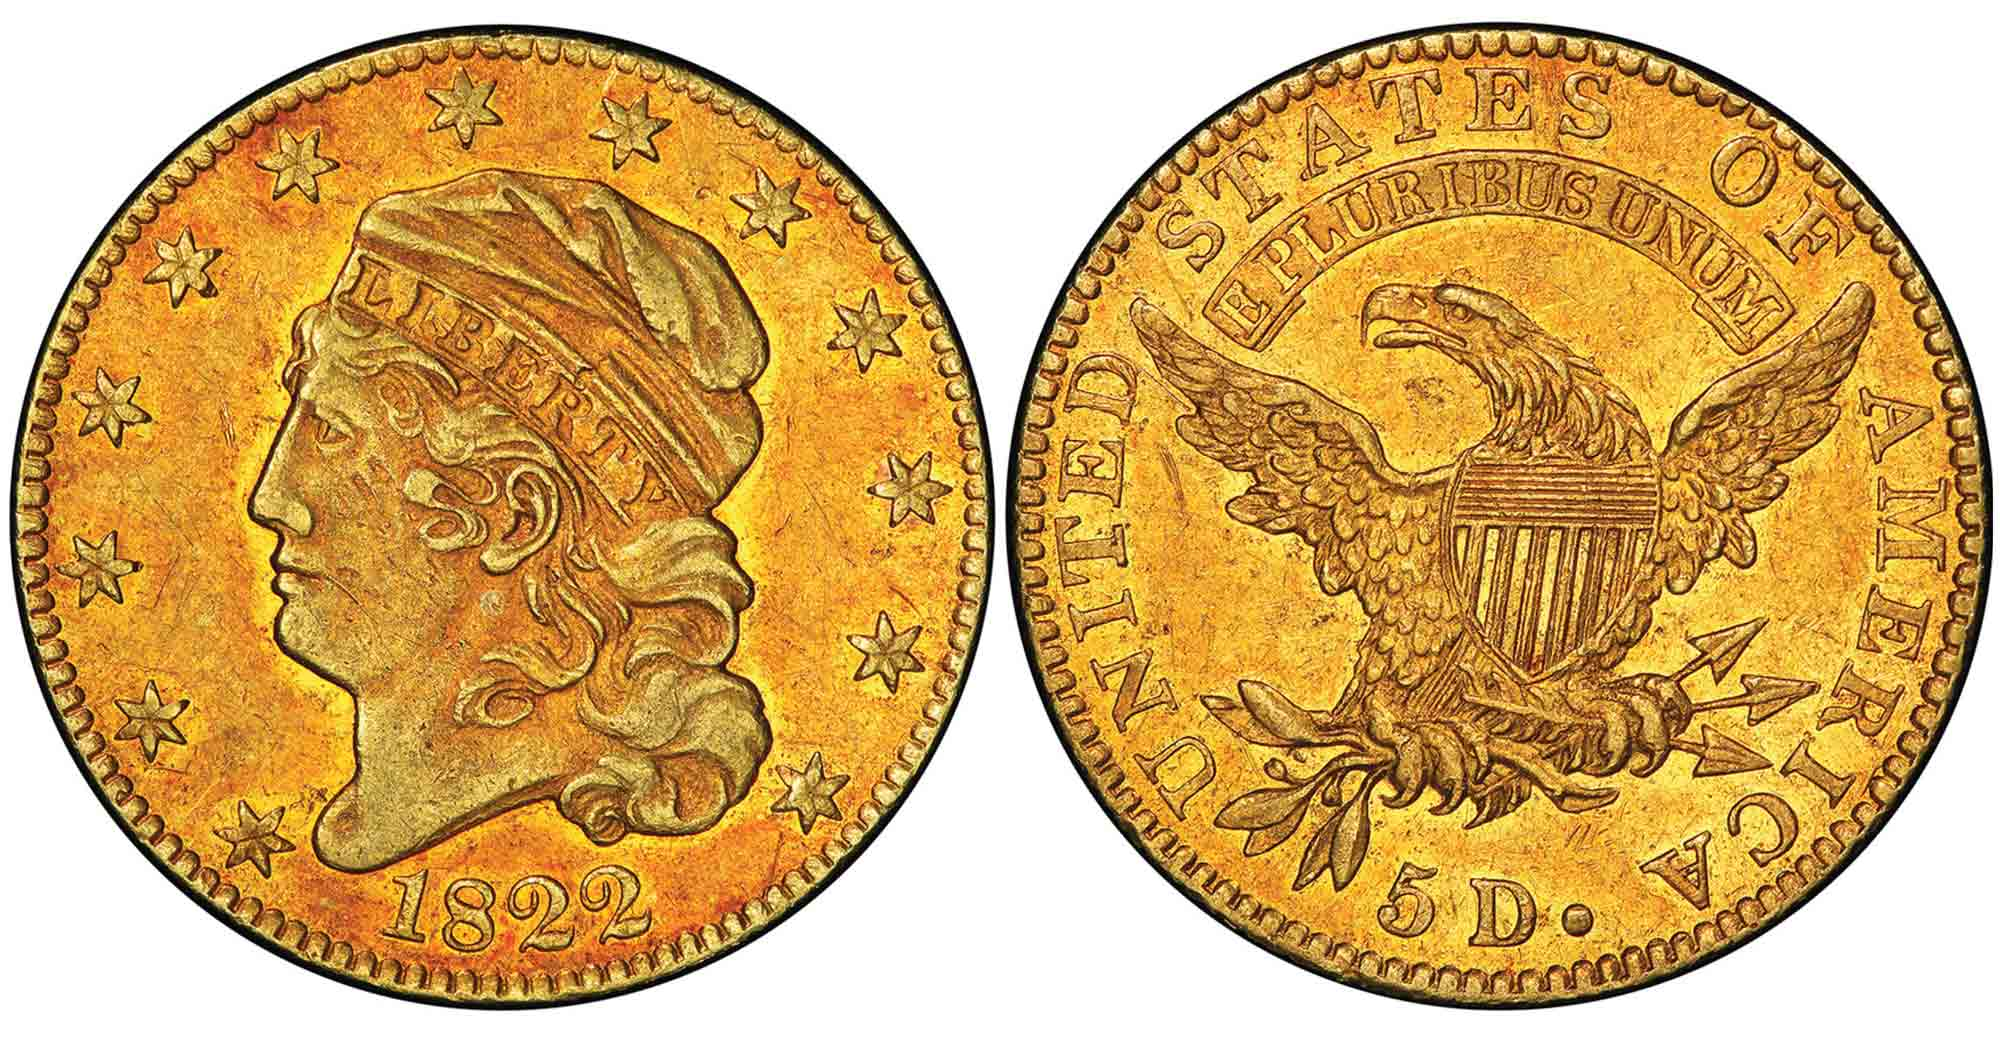 thumbnail image for Historic 1822 Half Eagle Sold for $8.4 Million in the Stack's Bowers Galleries March 2021 Auction: A New Auction Record